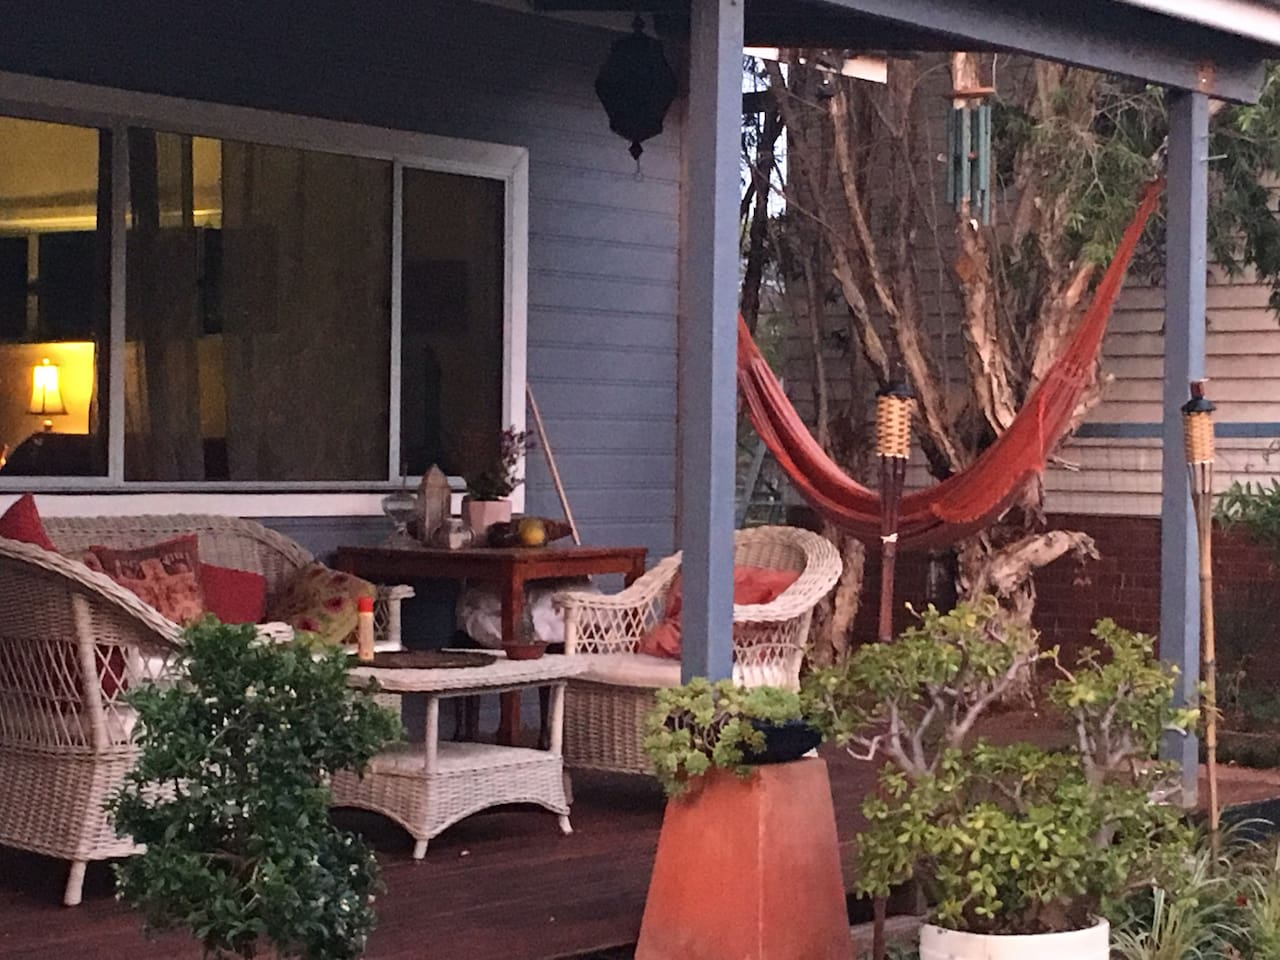 Welcome to our little bit of paradise. Home away from Home. Front deck for a relaxing morning coffee or evening celebrations with a definite Brazilian flavour. Bring your guitar or binoculars. The perfect setting for a little music or bird watching.